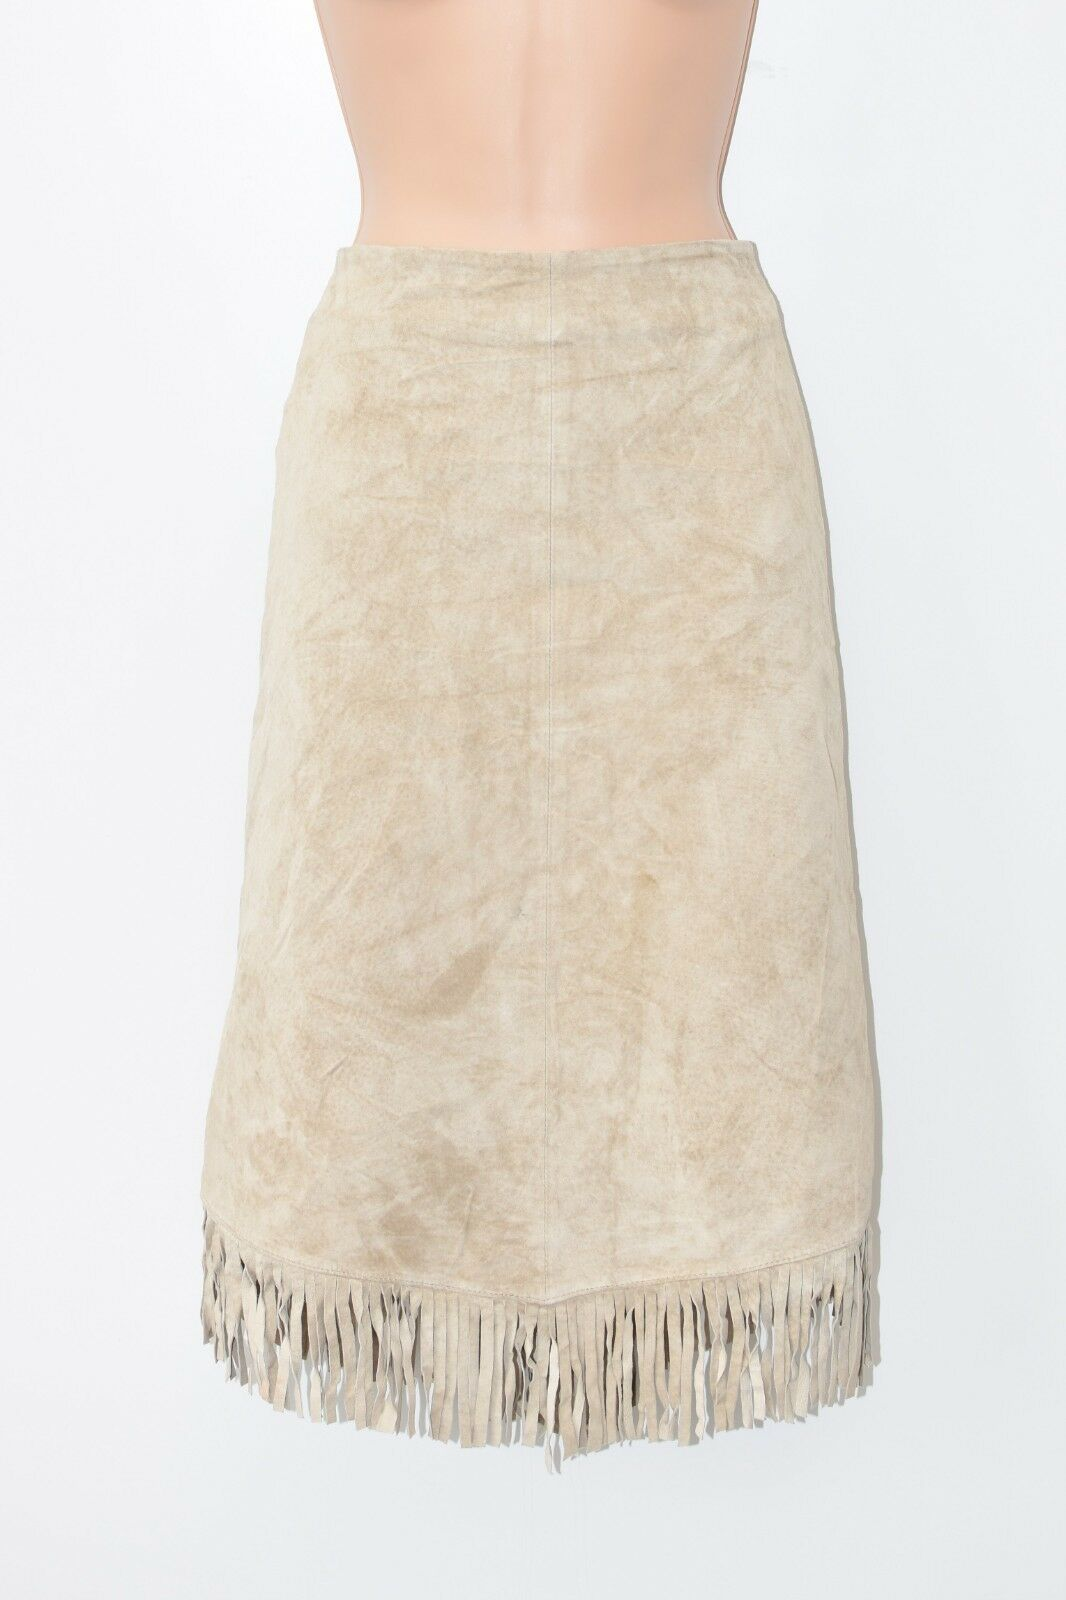 Brown Real Leather HPO Tassel Straight Pencil Below Knee Skirt Size UK12 L27